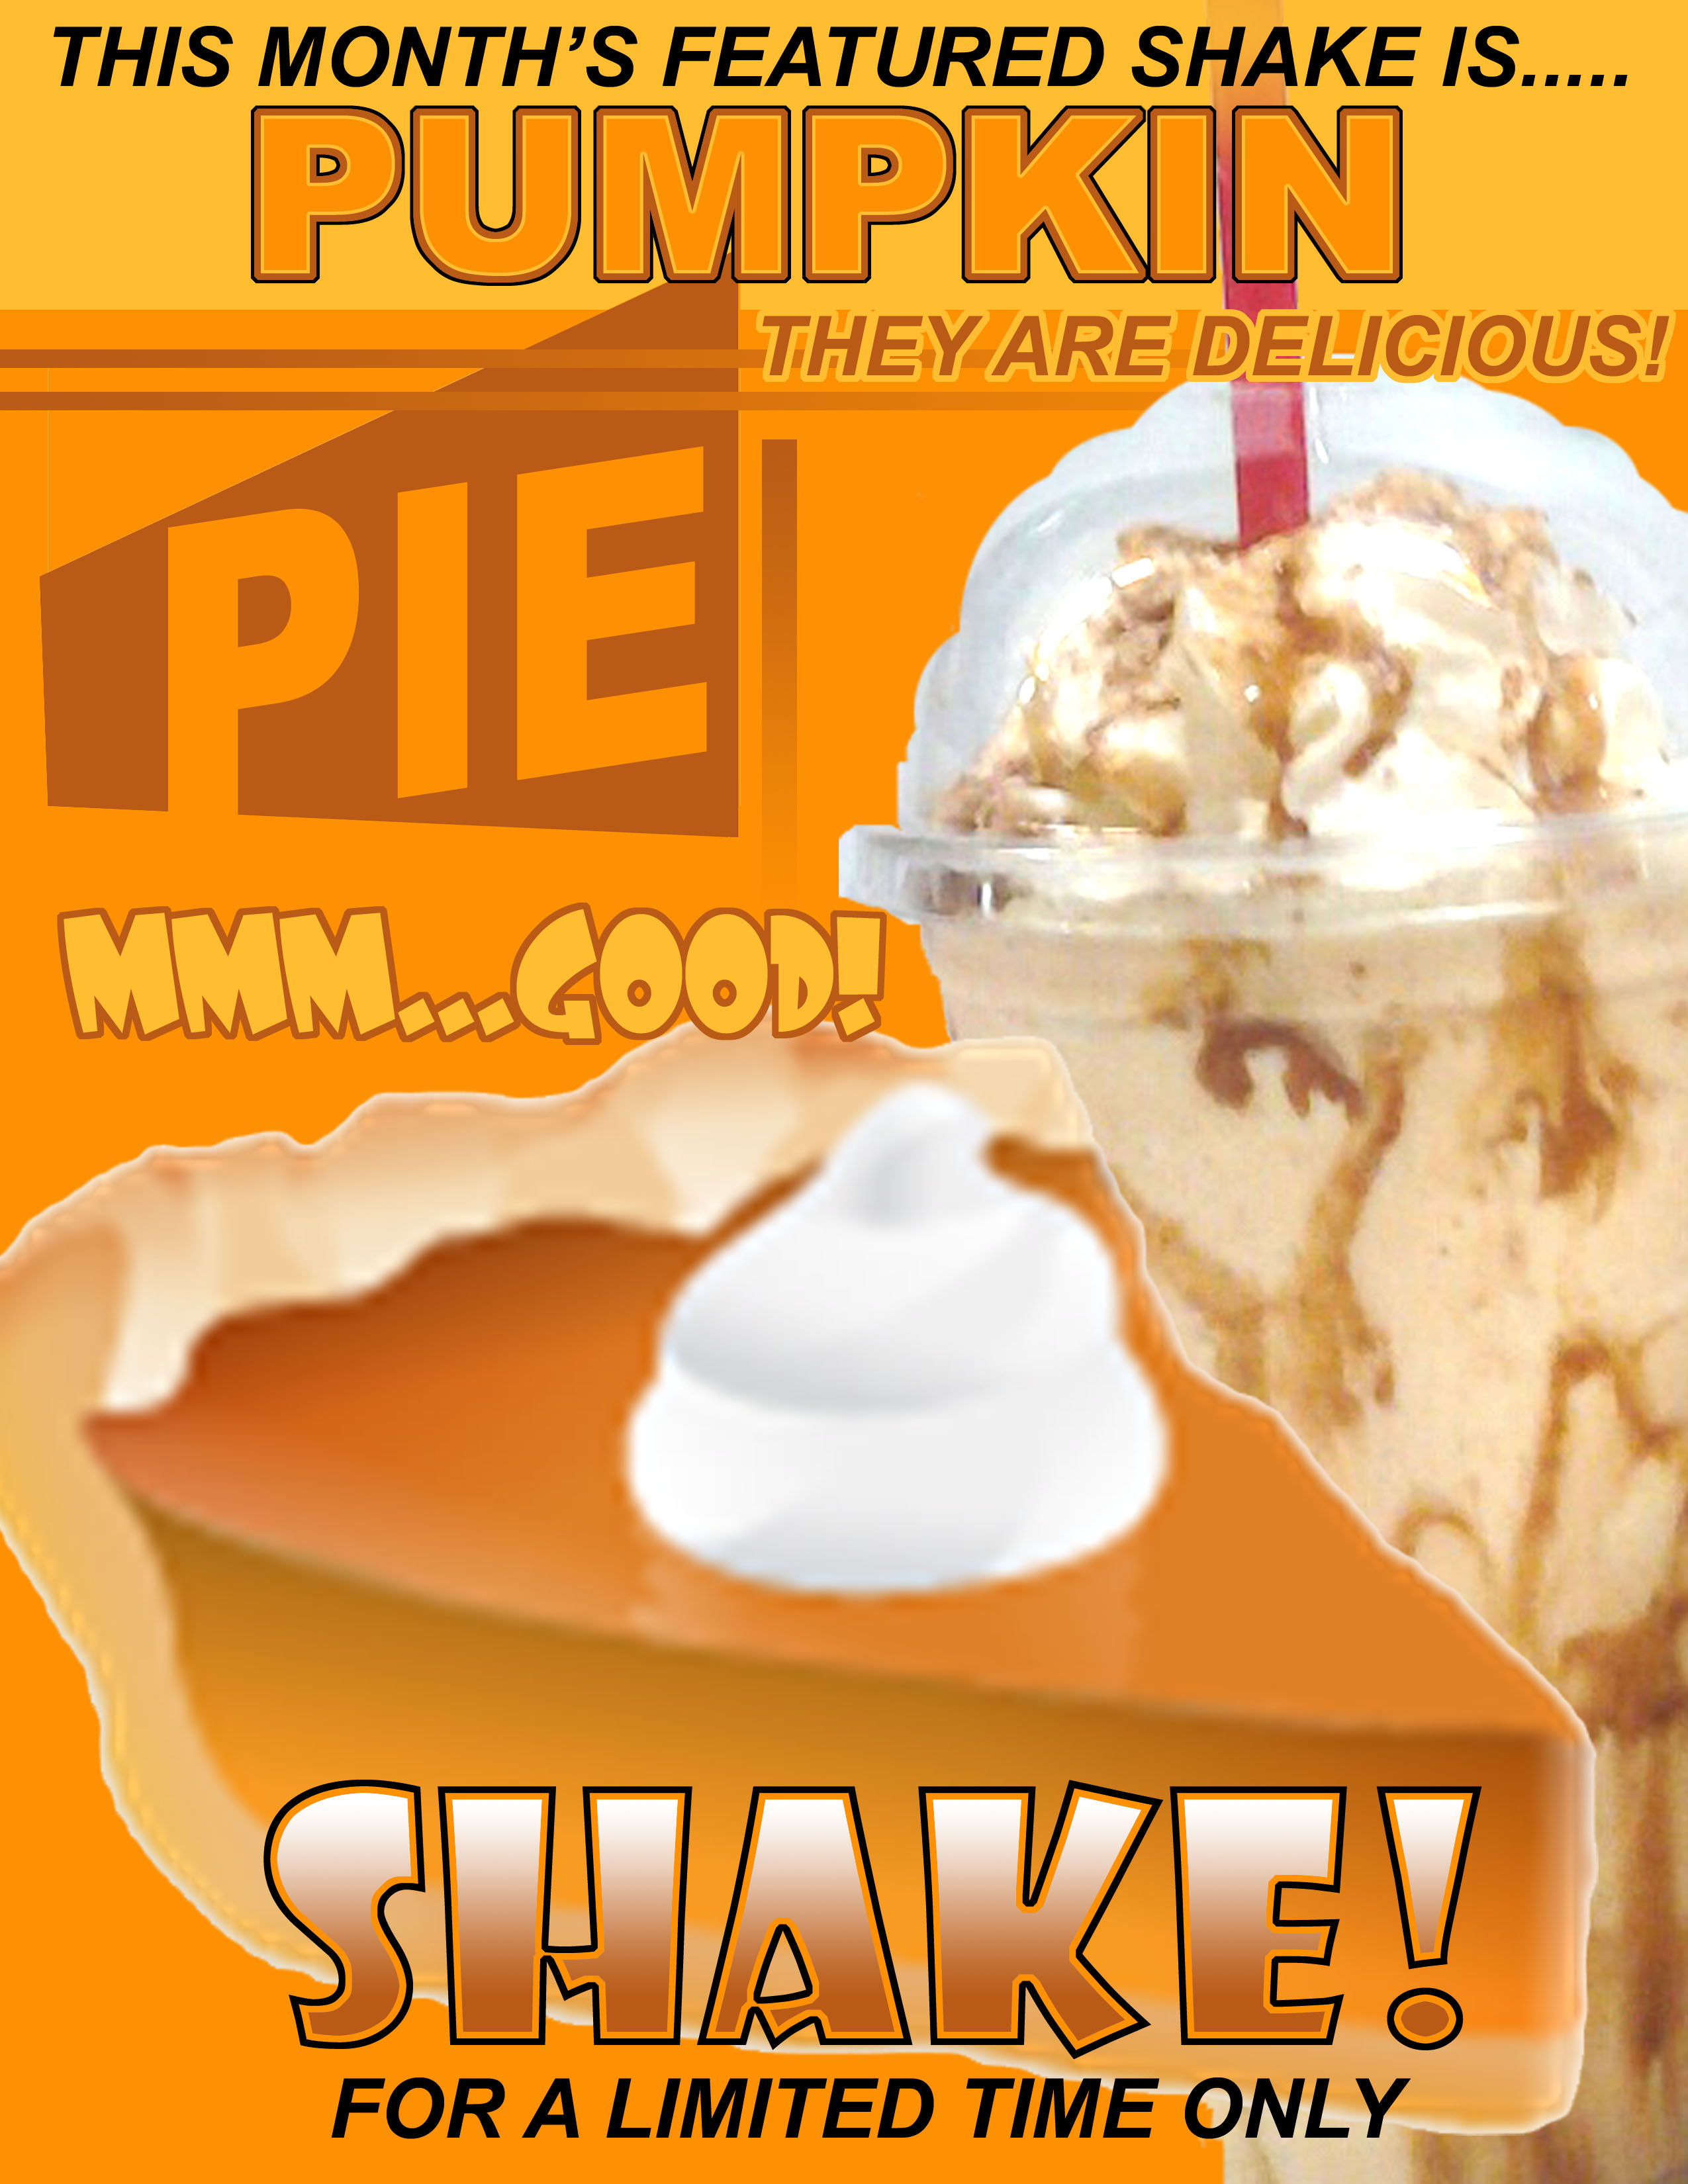 My, oh, my, come drink some pumpkin pie!